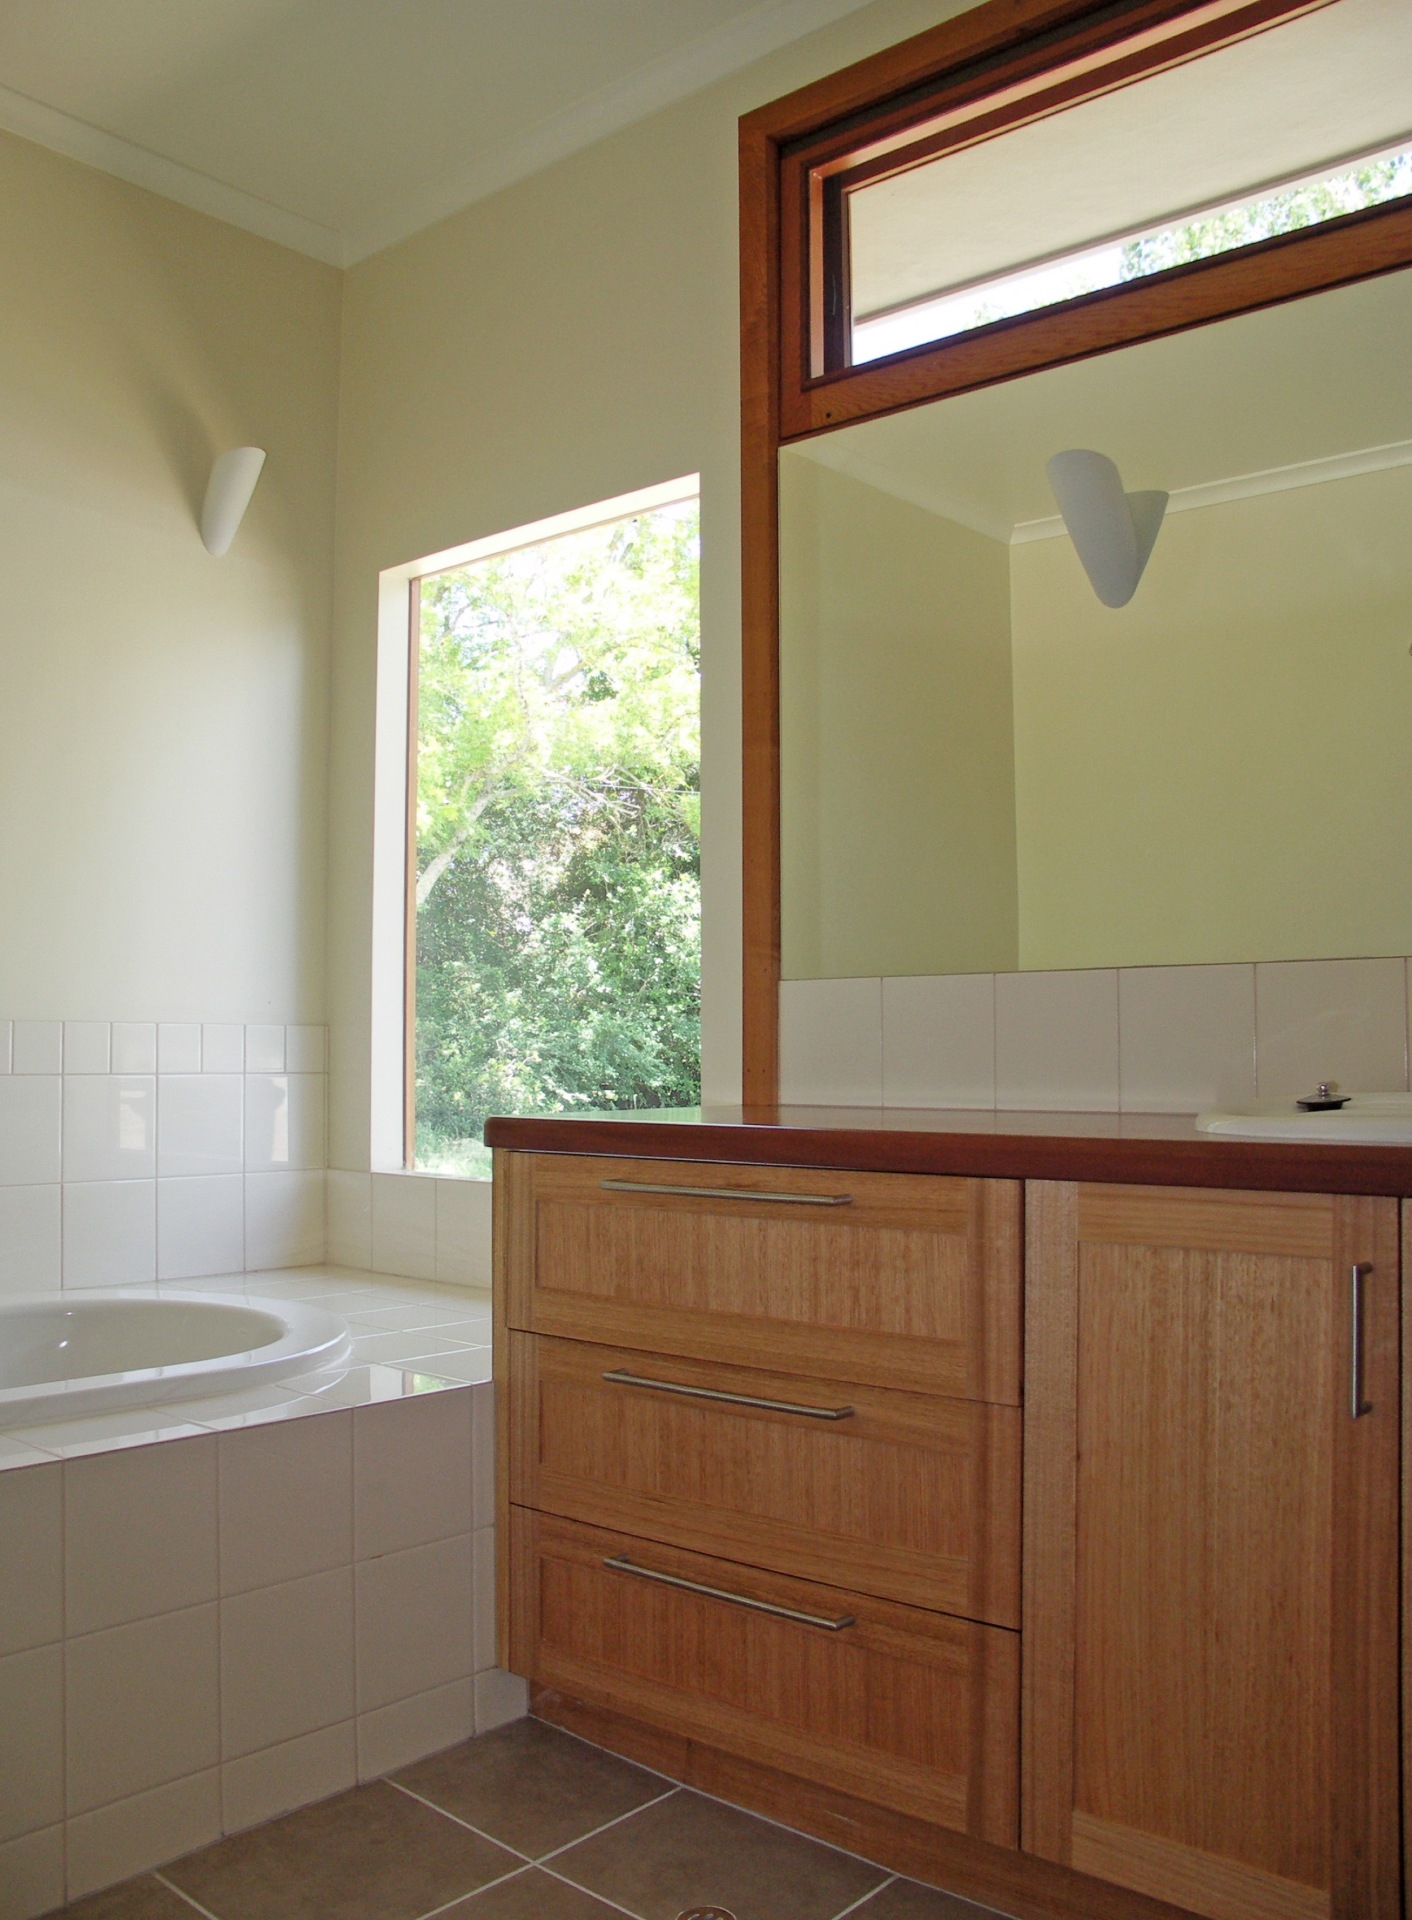 Yea House designed by sustainable architect Green Point Design. Bathroom. Natural and recycled materials.